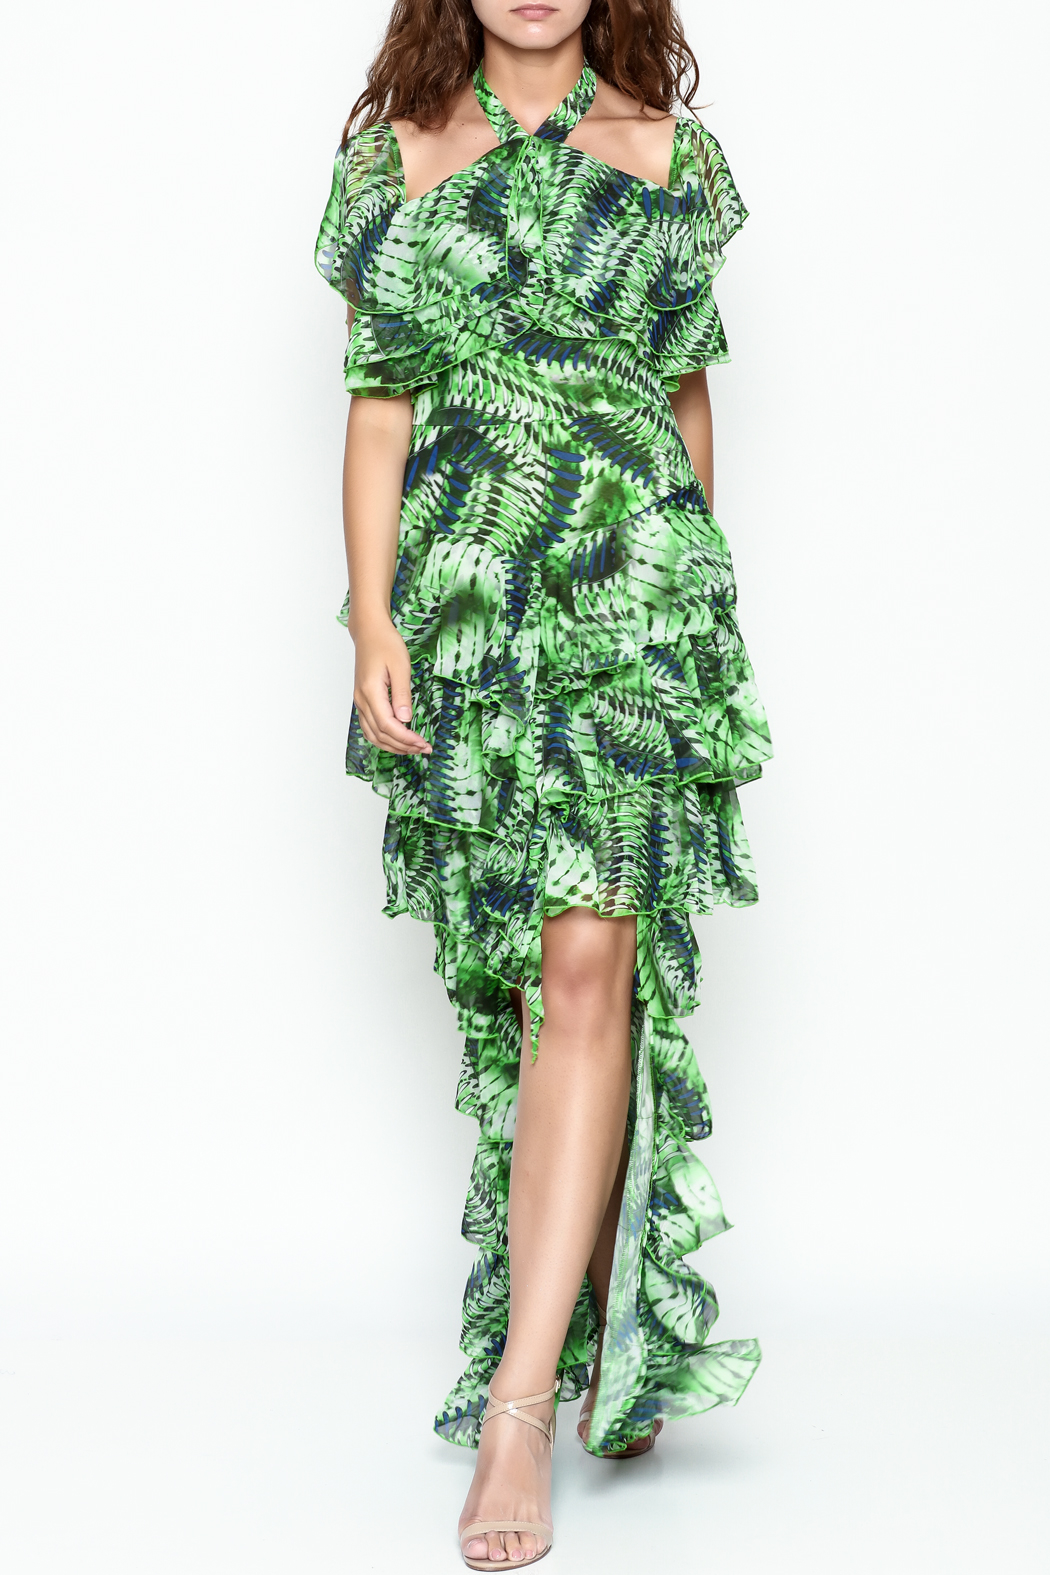 cq by cq Green Ruffle Dress - Front Cropped Image